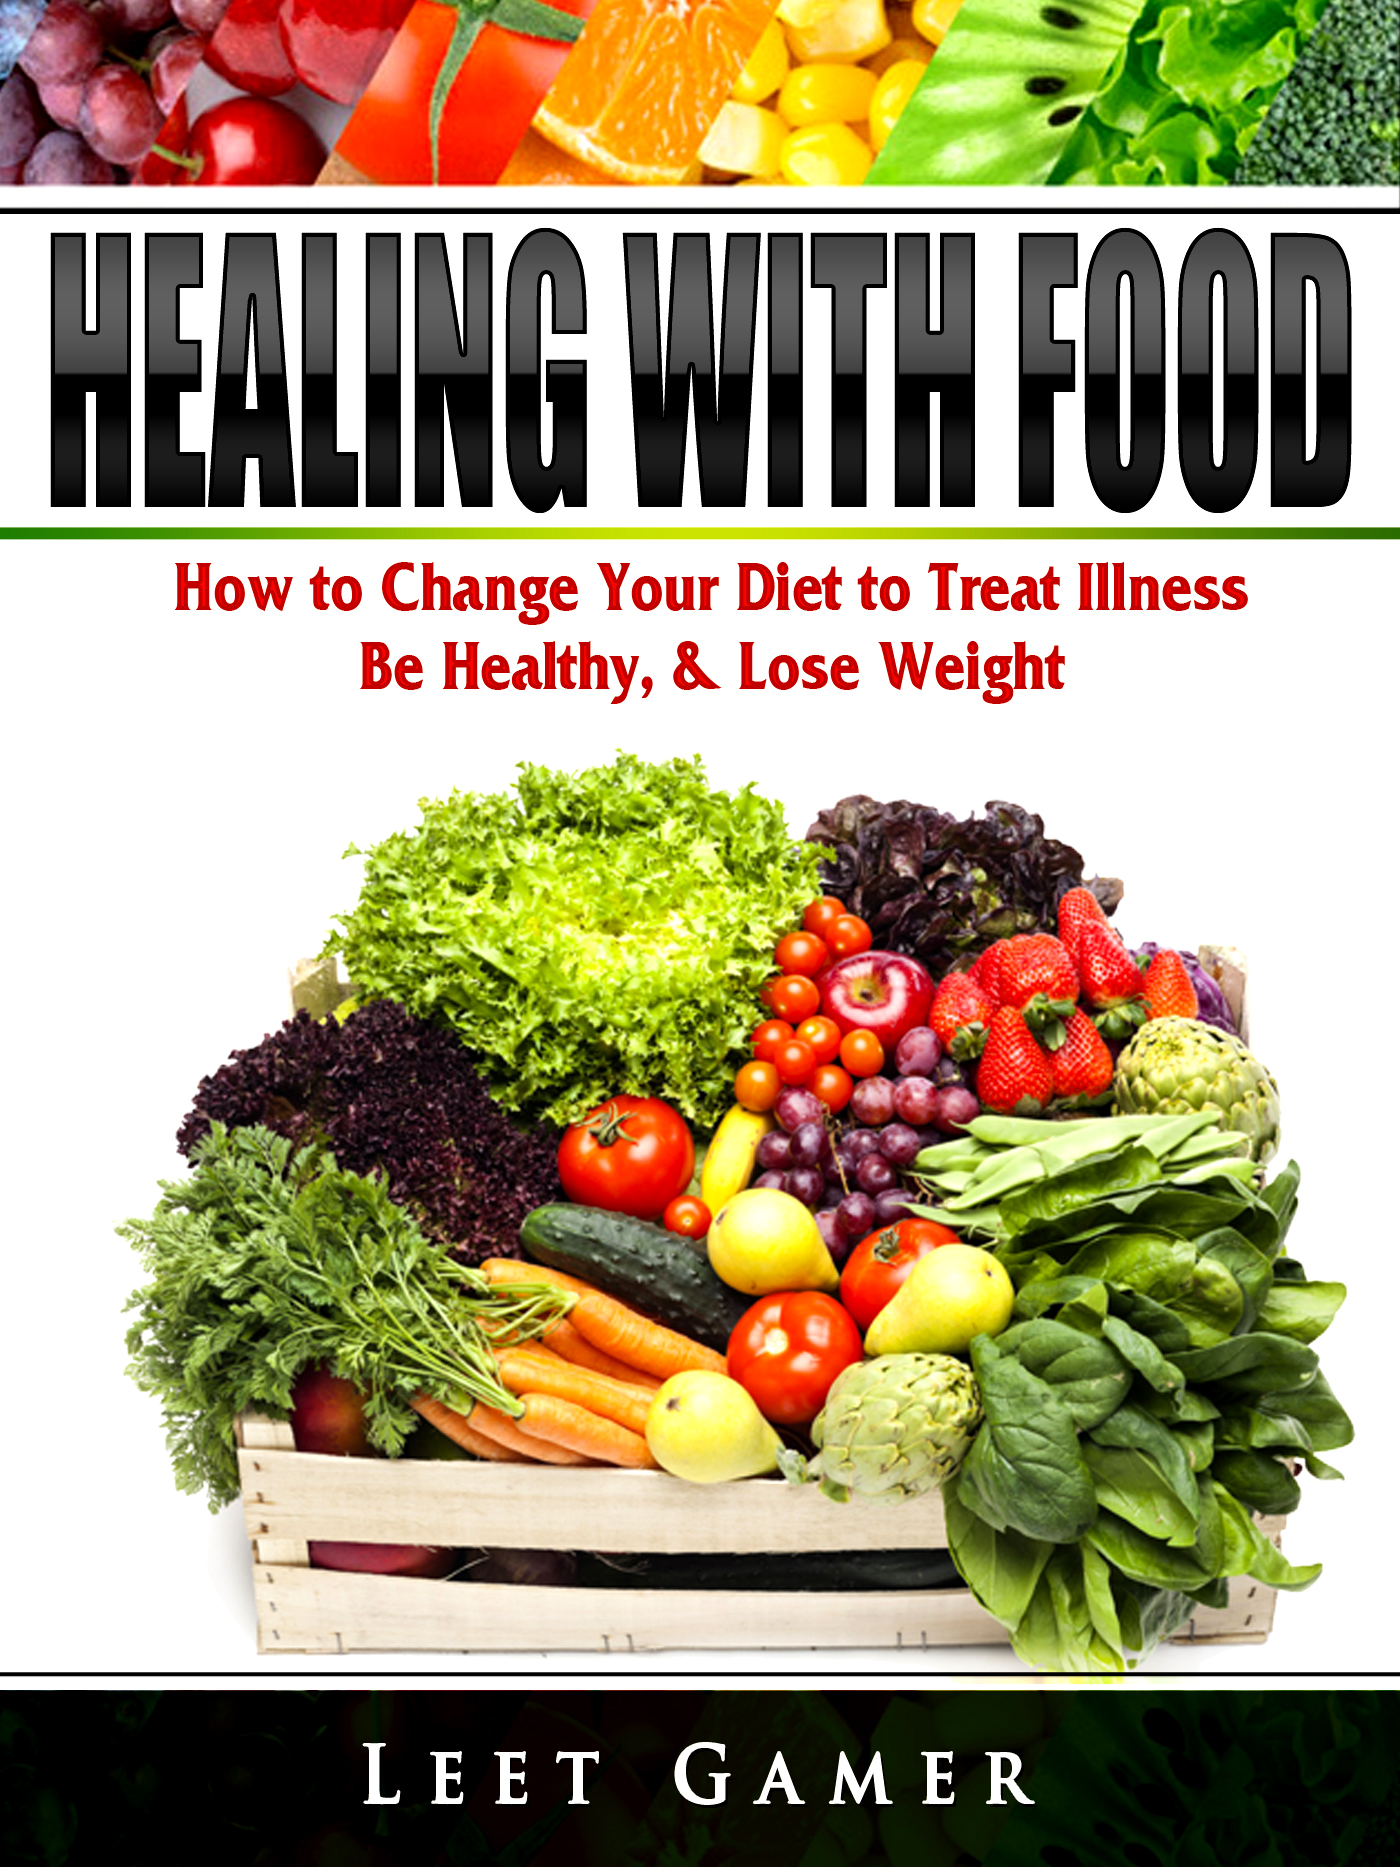 Healing with food: how to change your diet to treat illness, be healthy, & lose weight